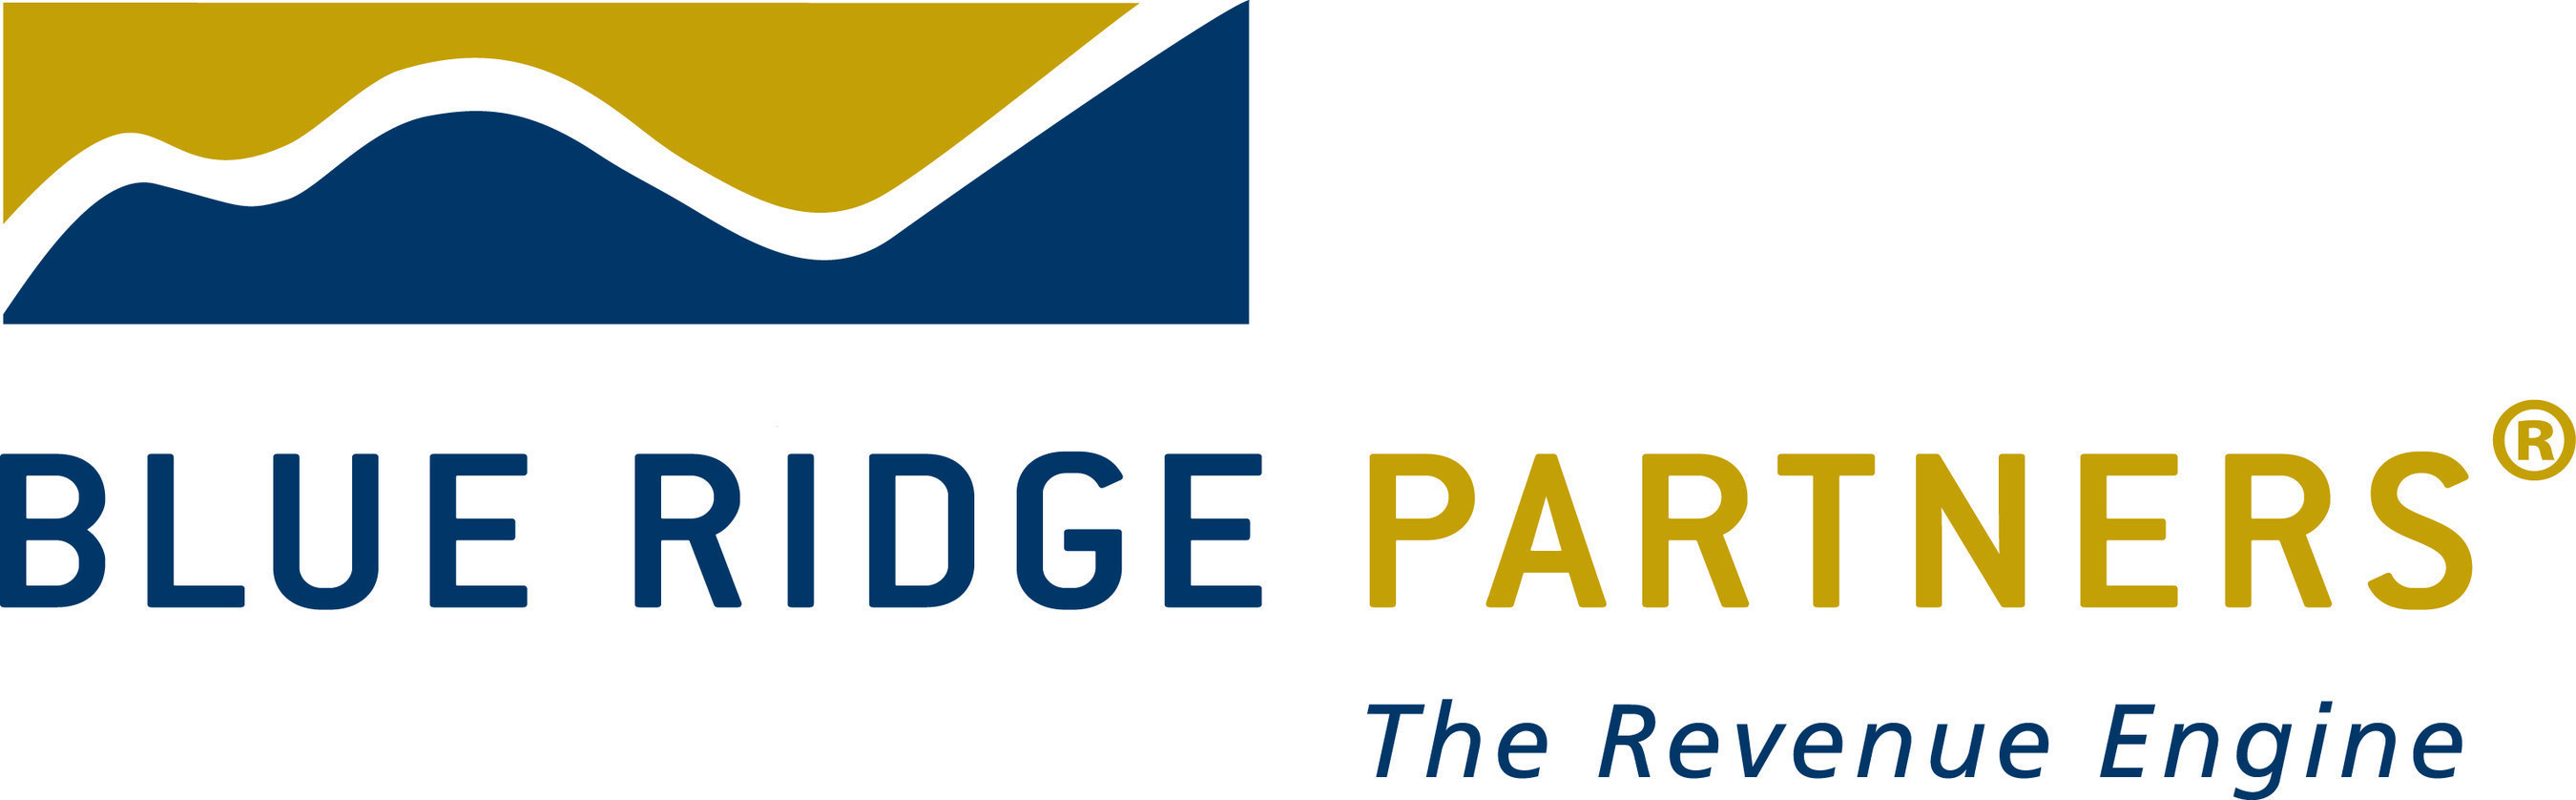 Blue Ridge Partners is exclusively focused on helping companies accelerate profitable revenue growth